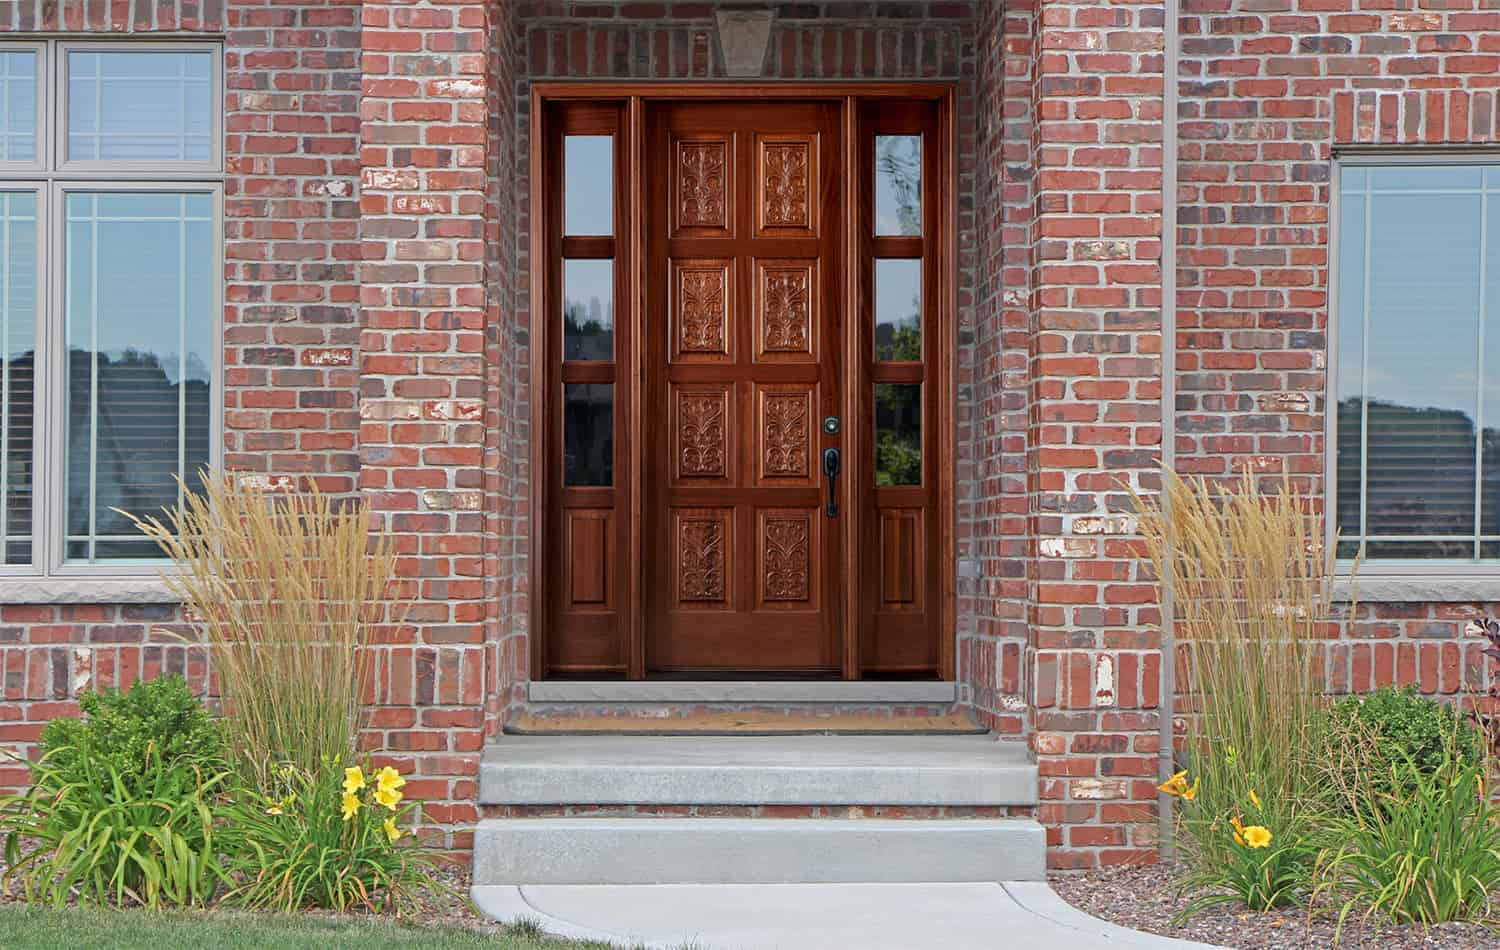 Hand-carved wood entry door on brick exterior house